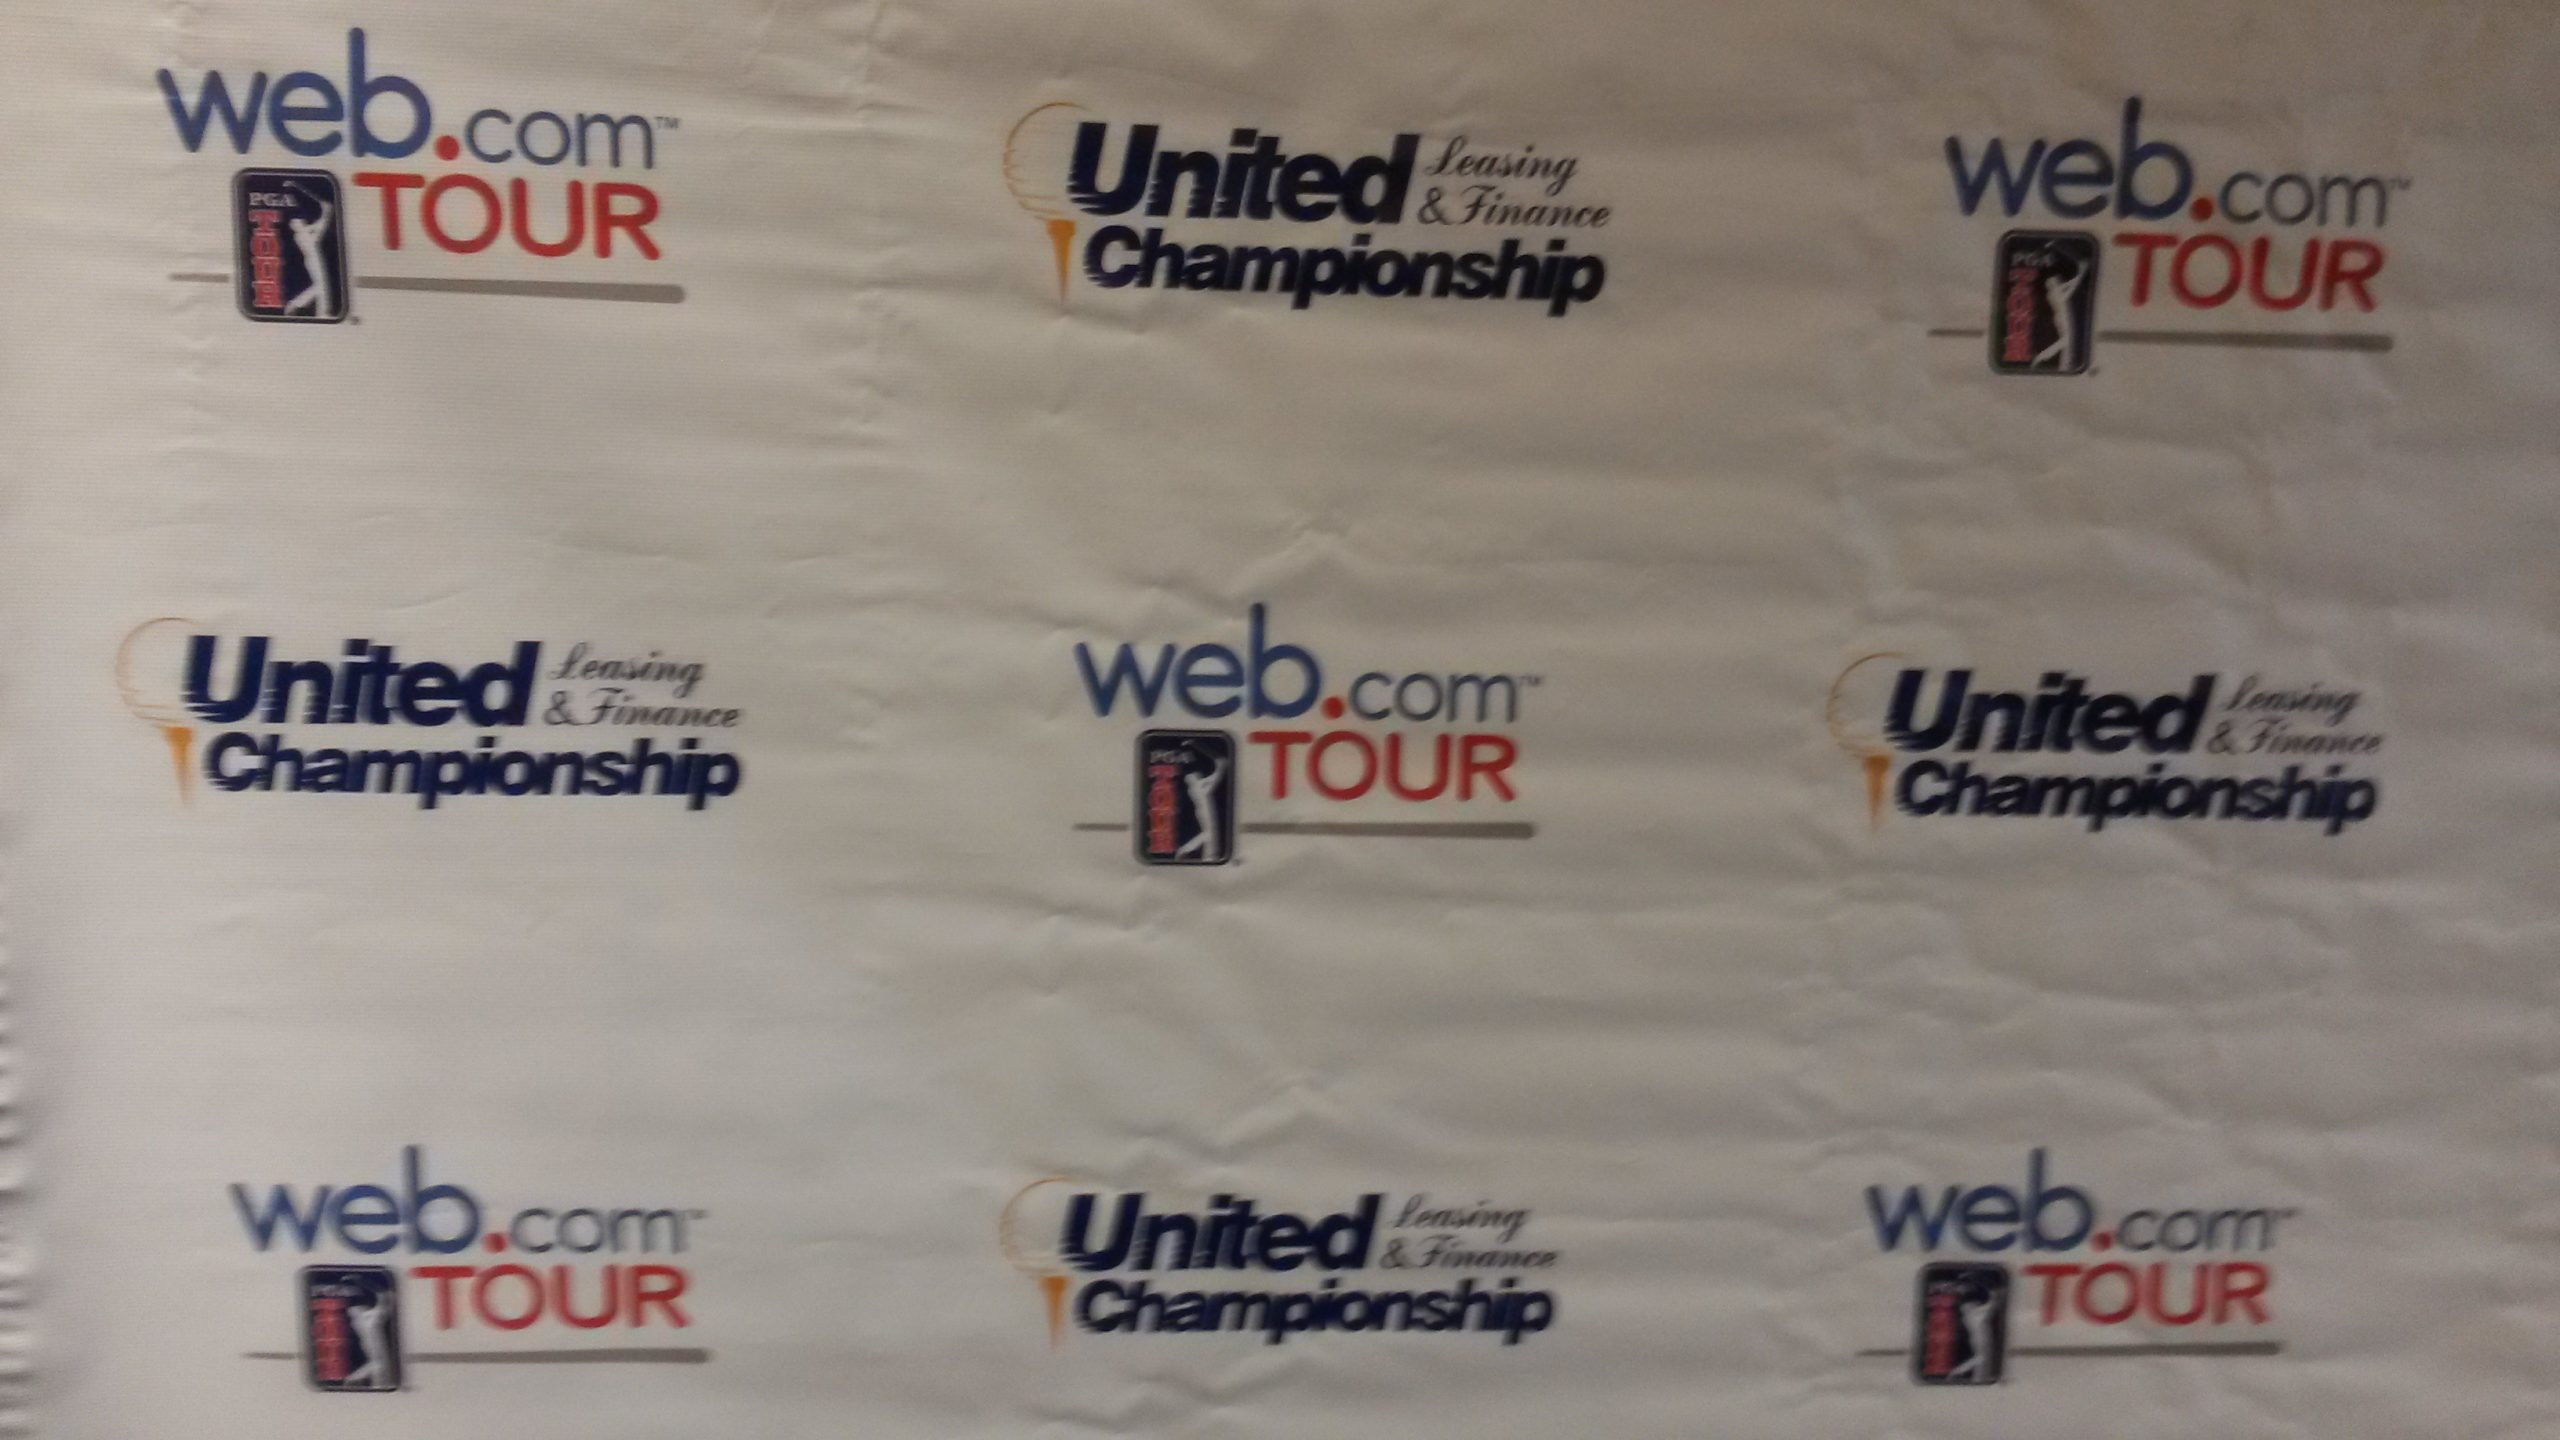 PROFESSIONAL GOLF IS COMING TO OWENSBORO